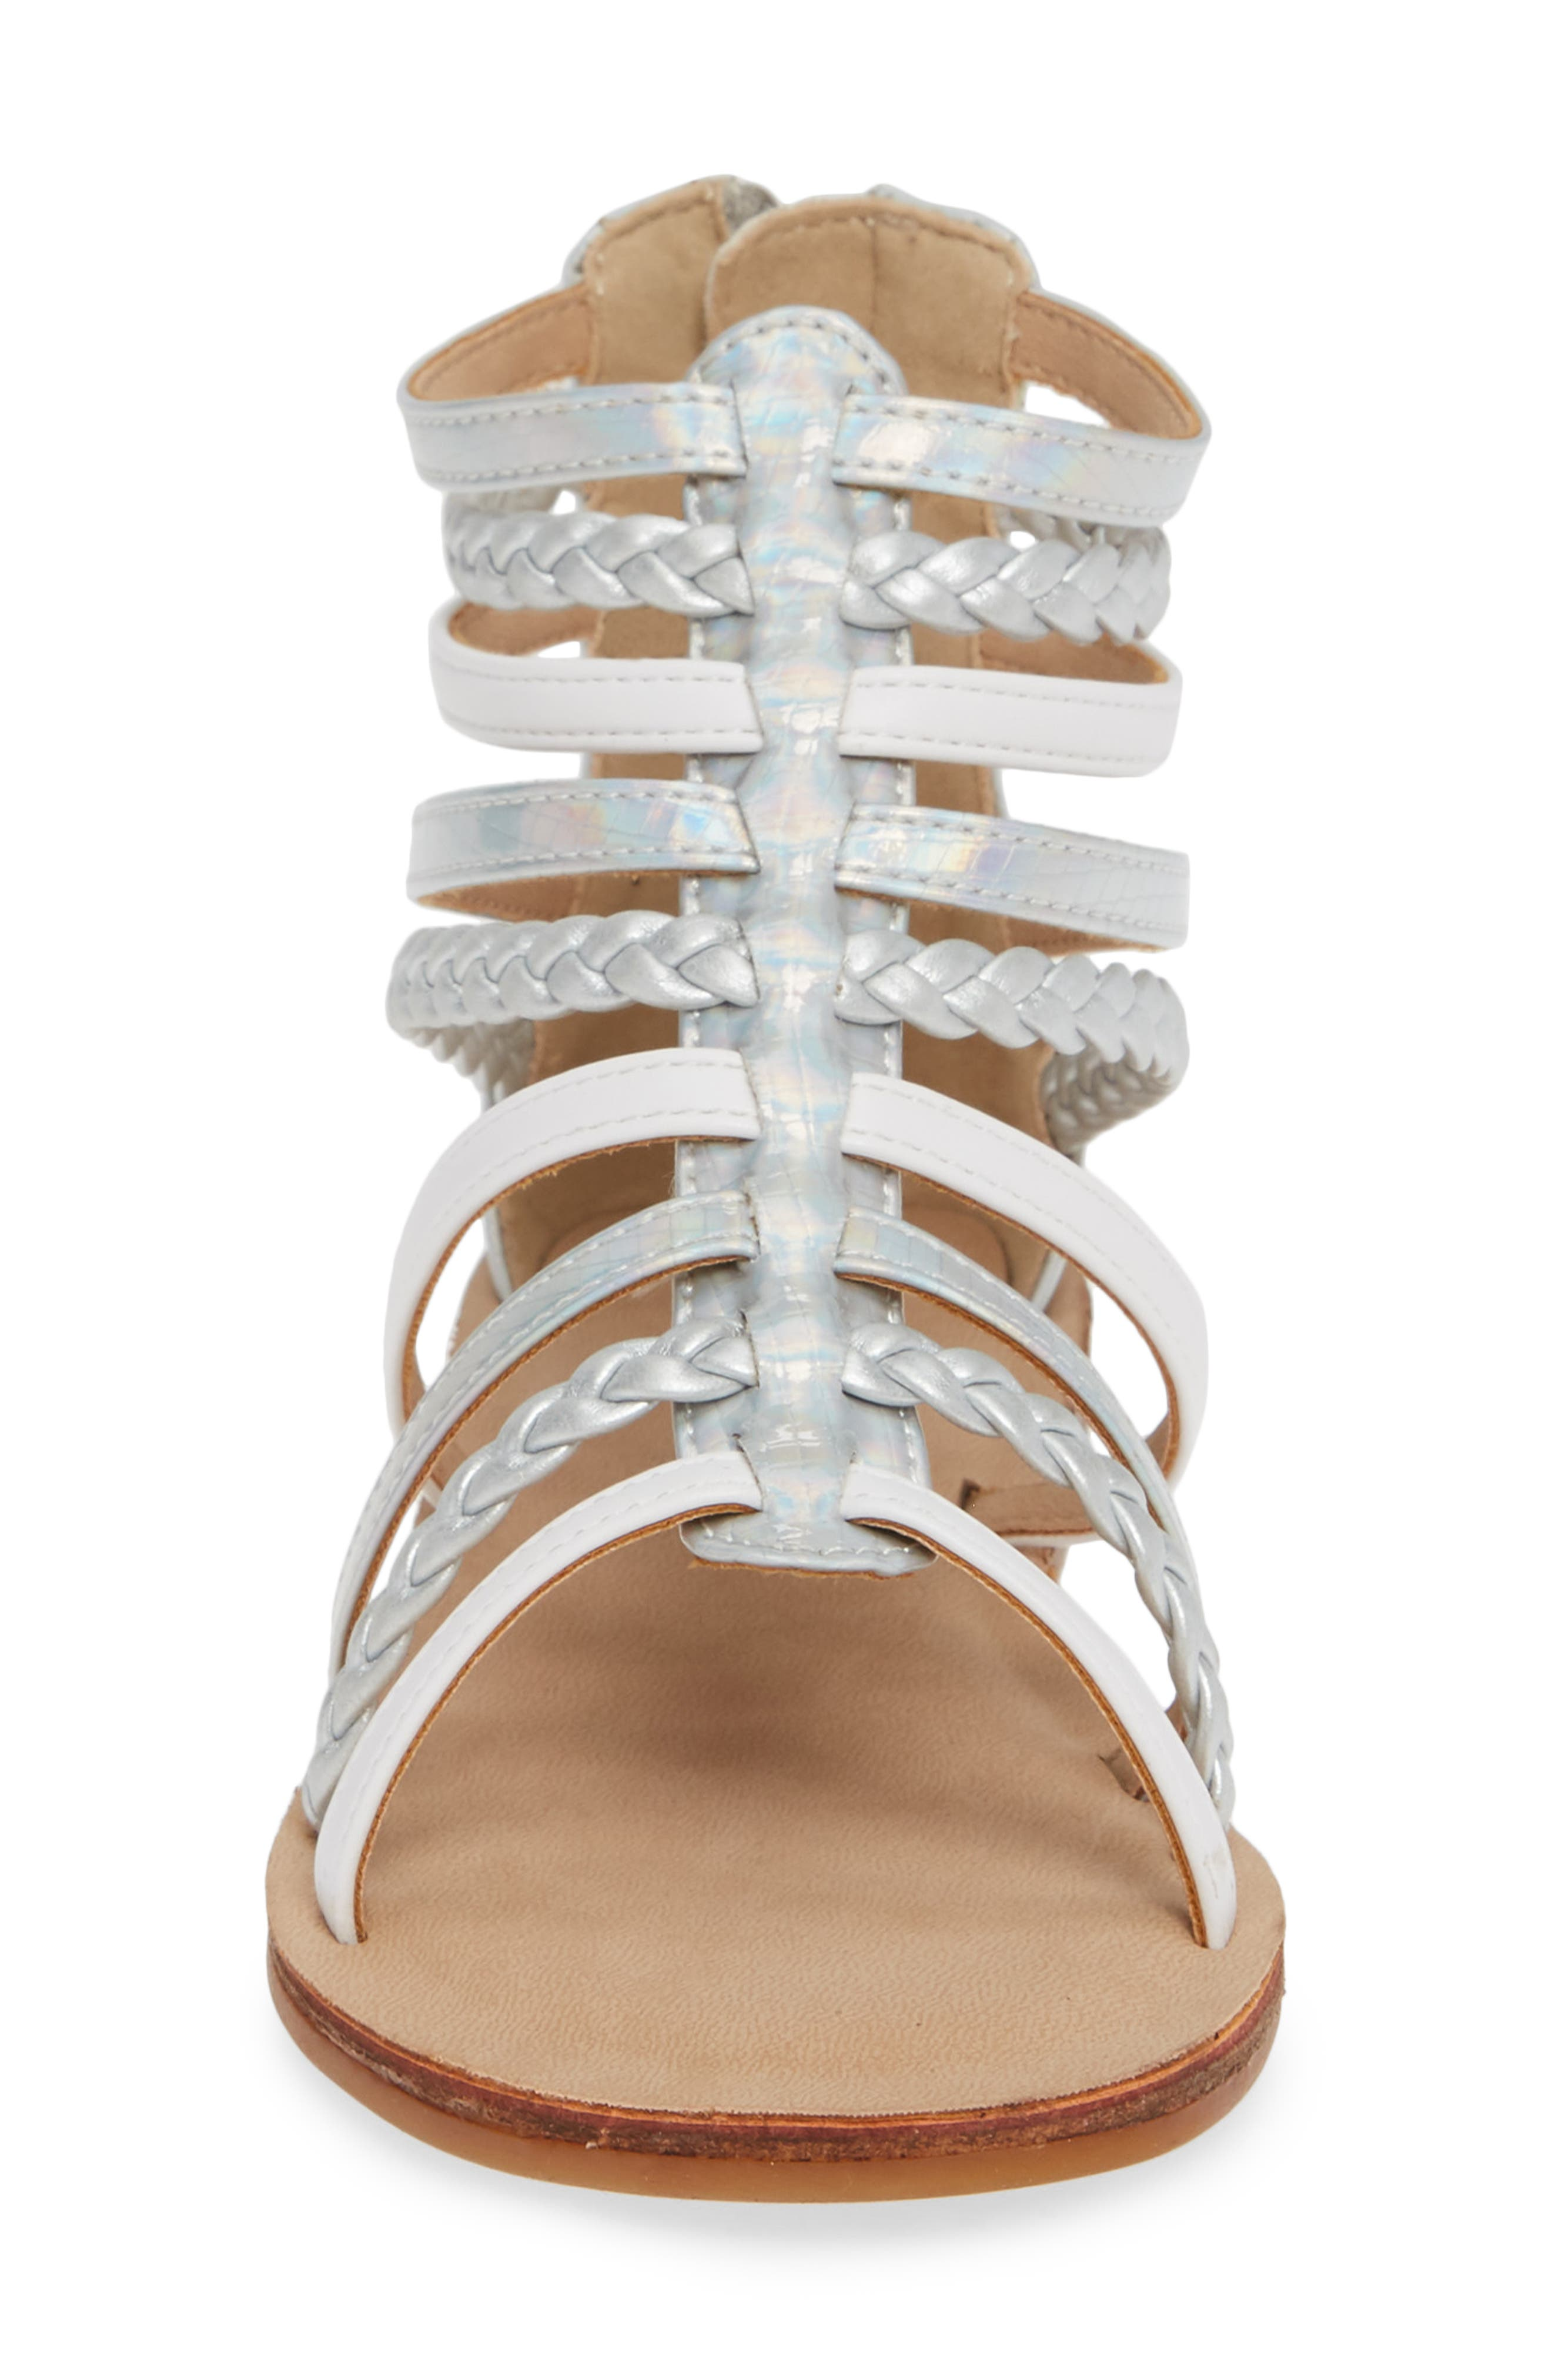 Sonja Braided Gladiator Sandal,                             Alternate thumbnail 4, color,                             WHITE/SILVER FAUX LEATHER